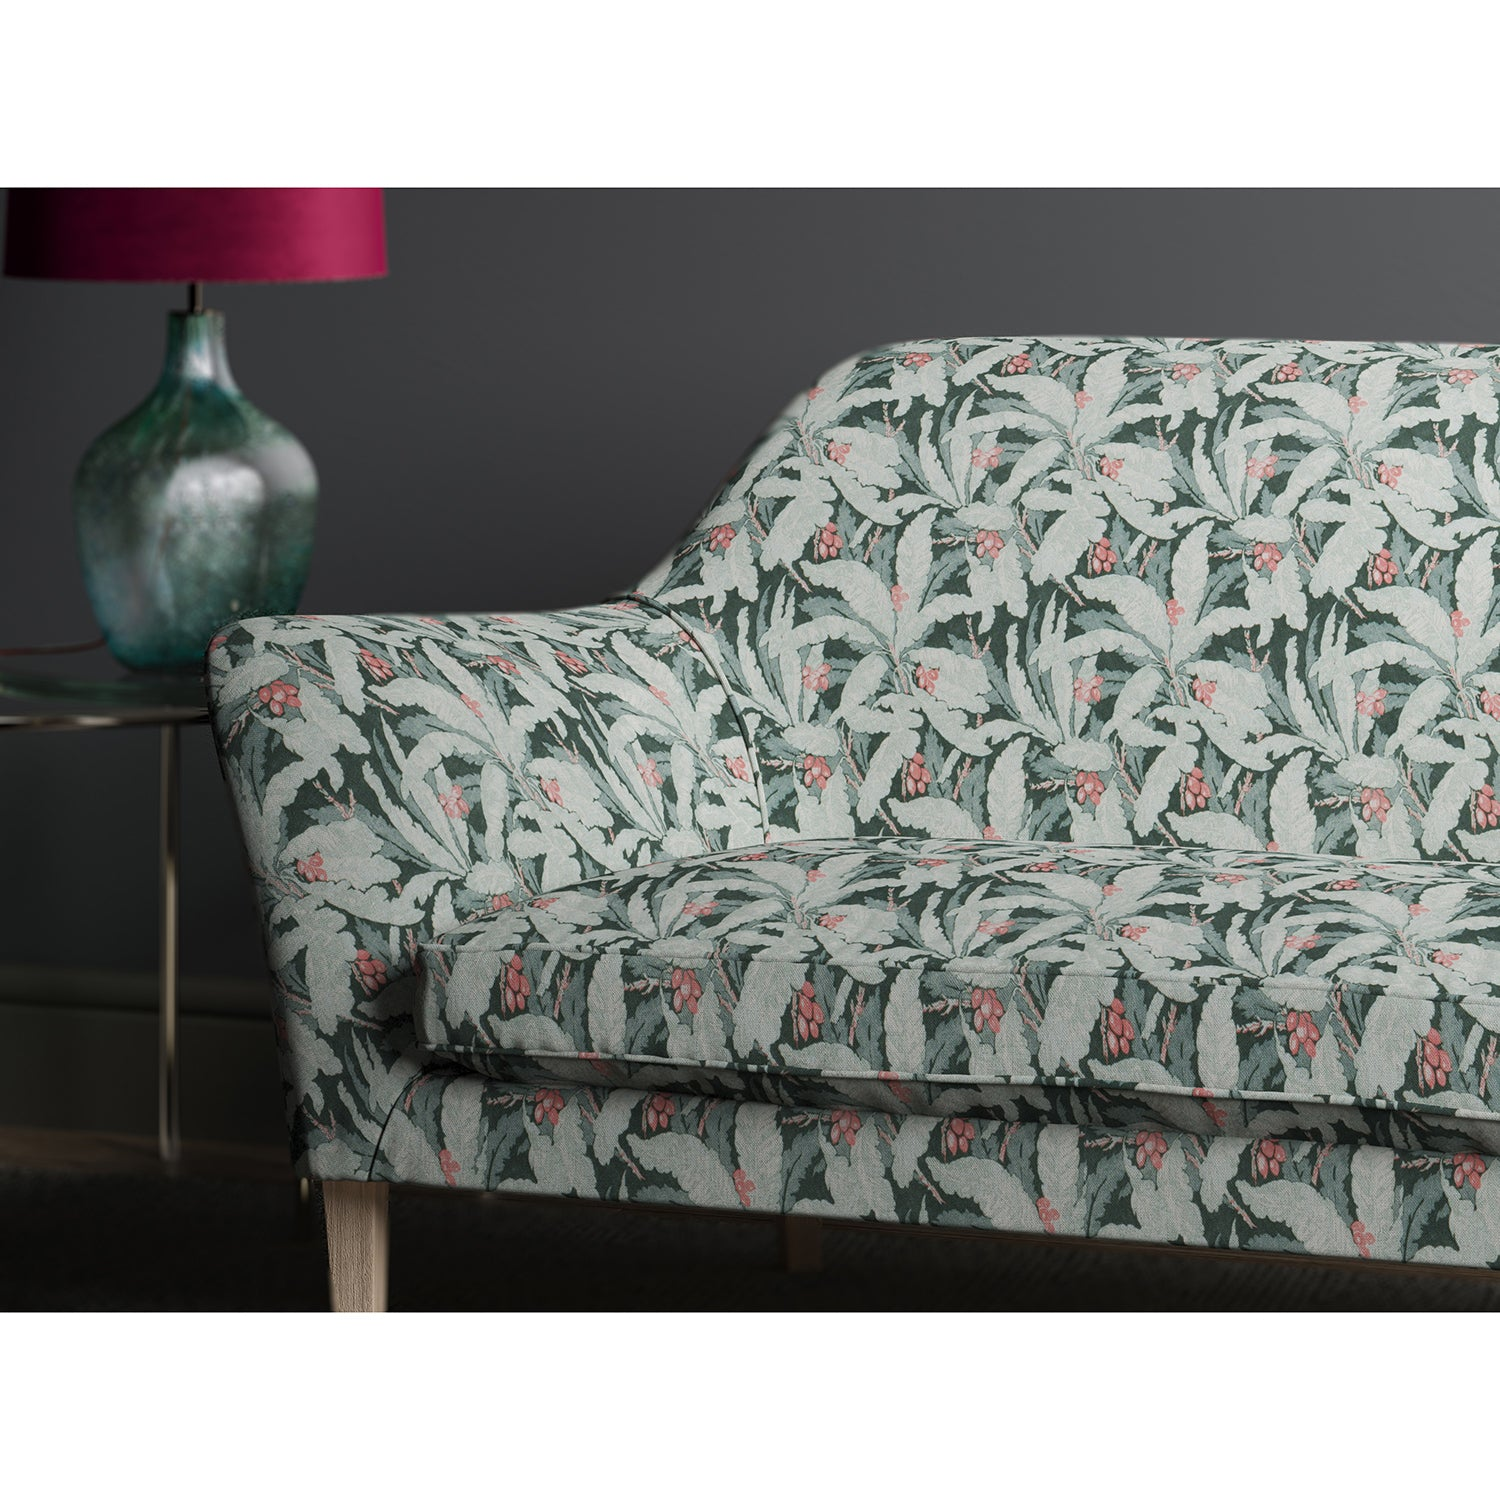 Sofa in a printed blue fabric with tropical leaf design